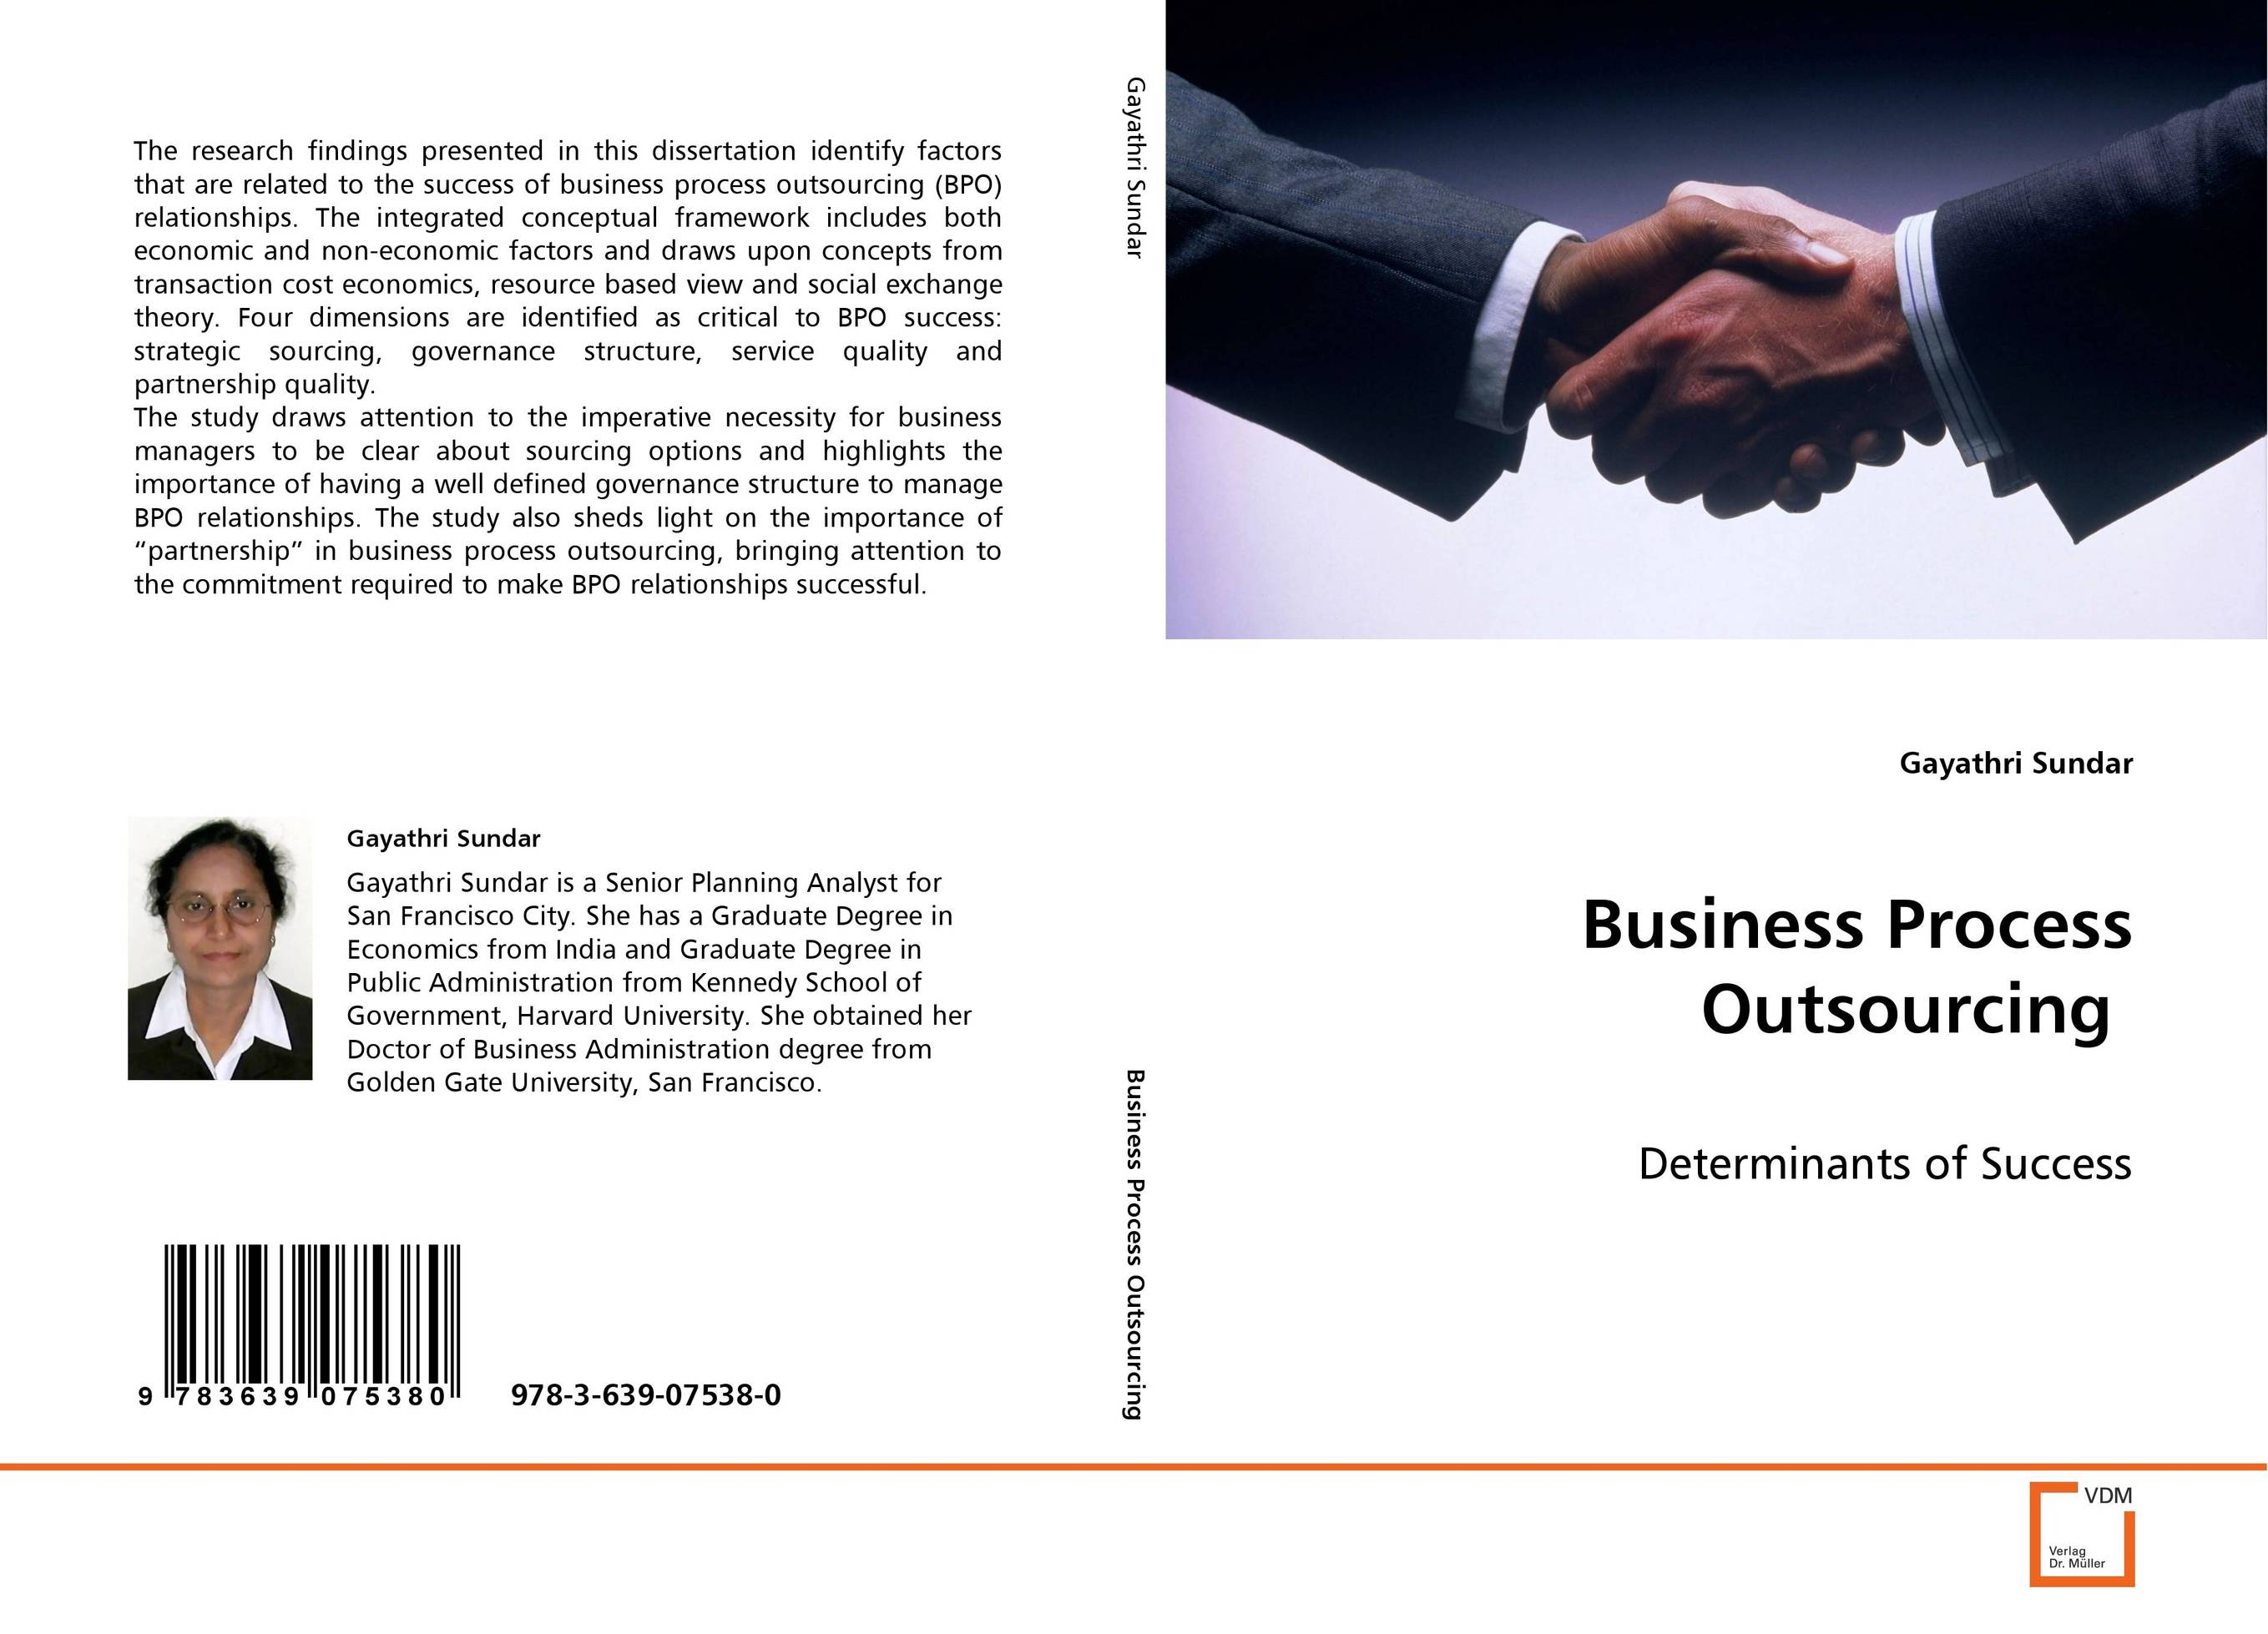 Business Process Outsourcing business process outsourcing and law on contract labour in india